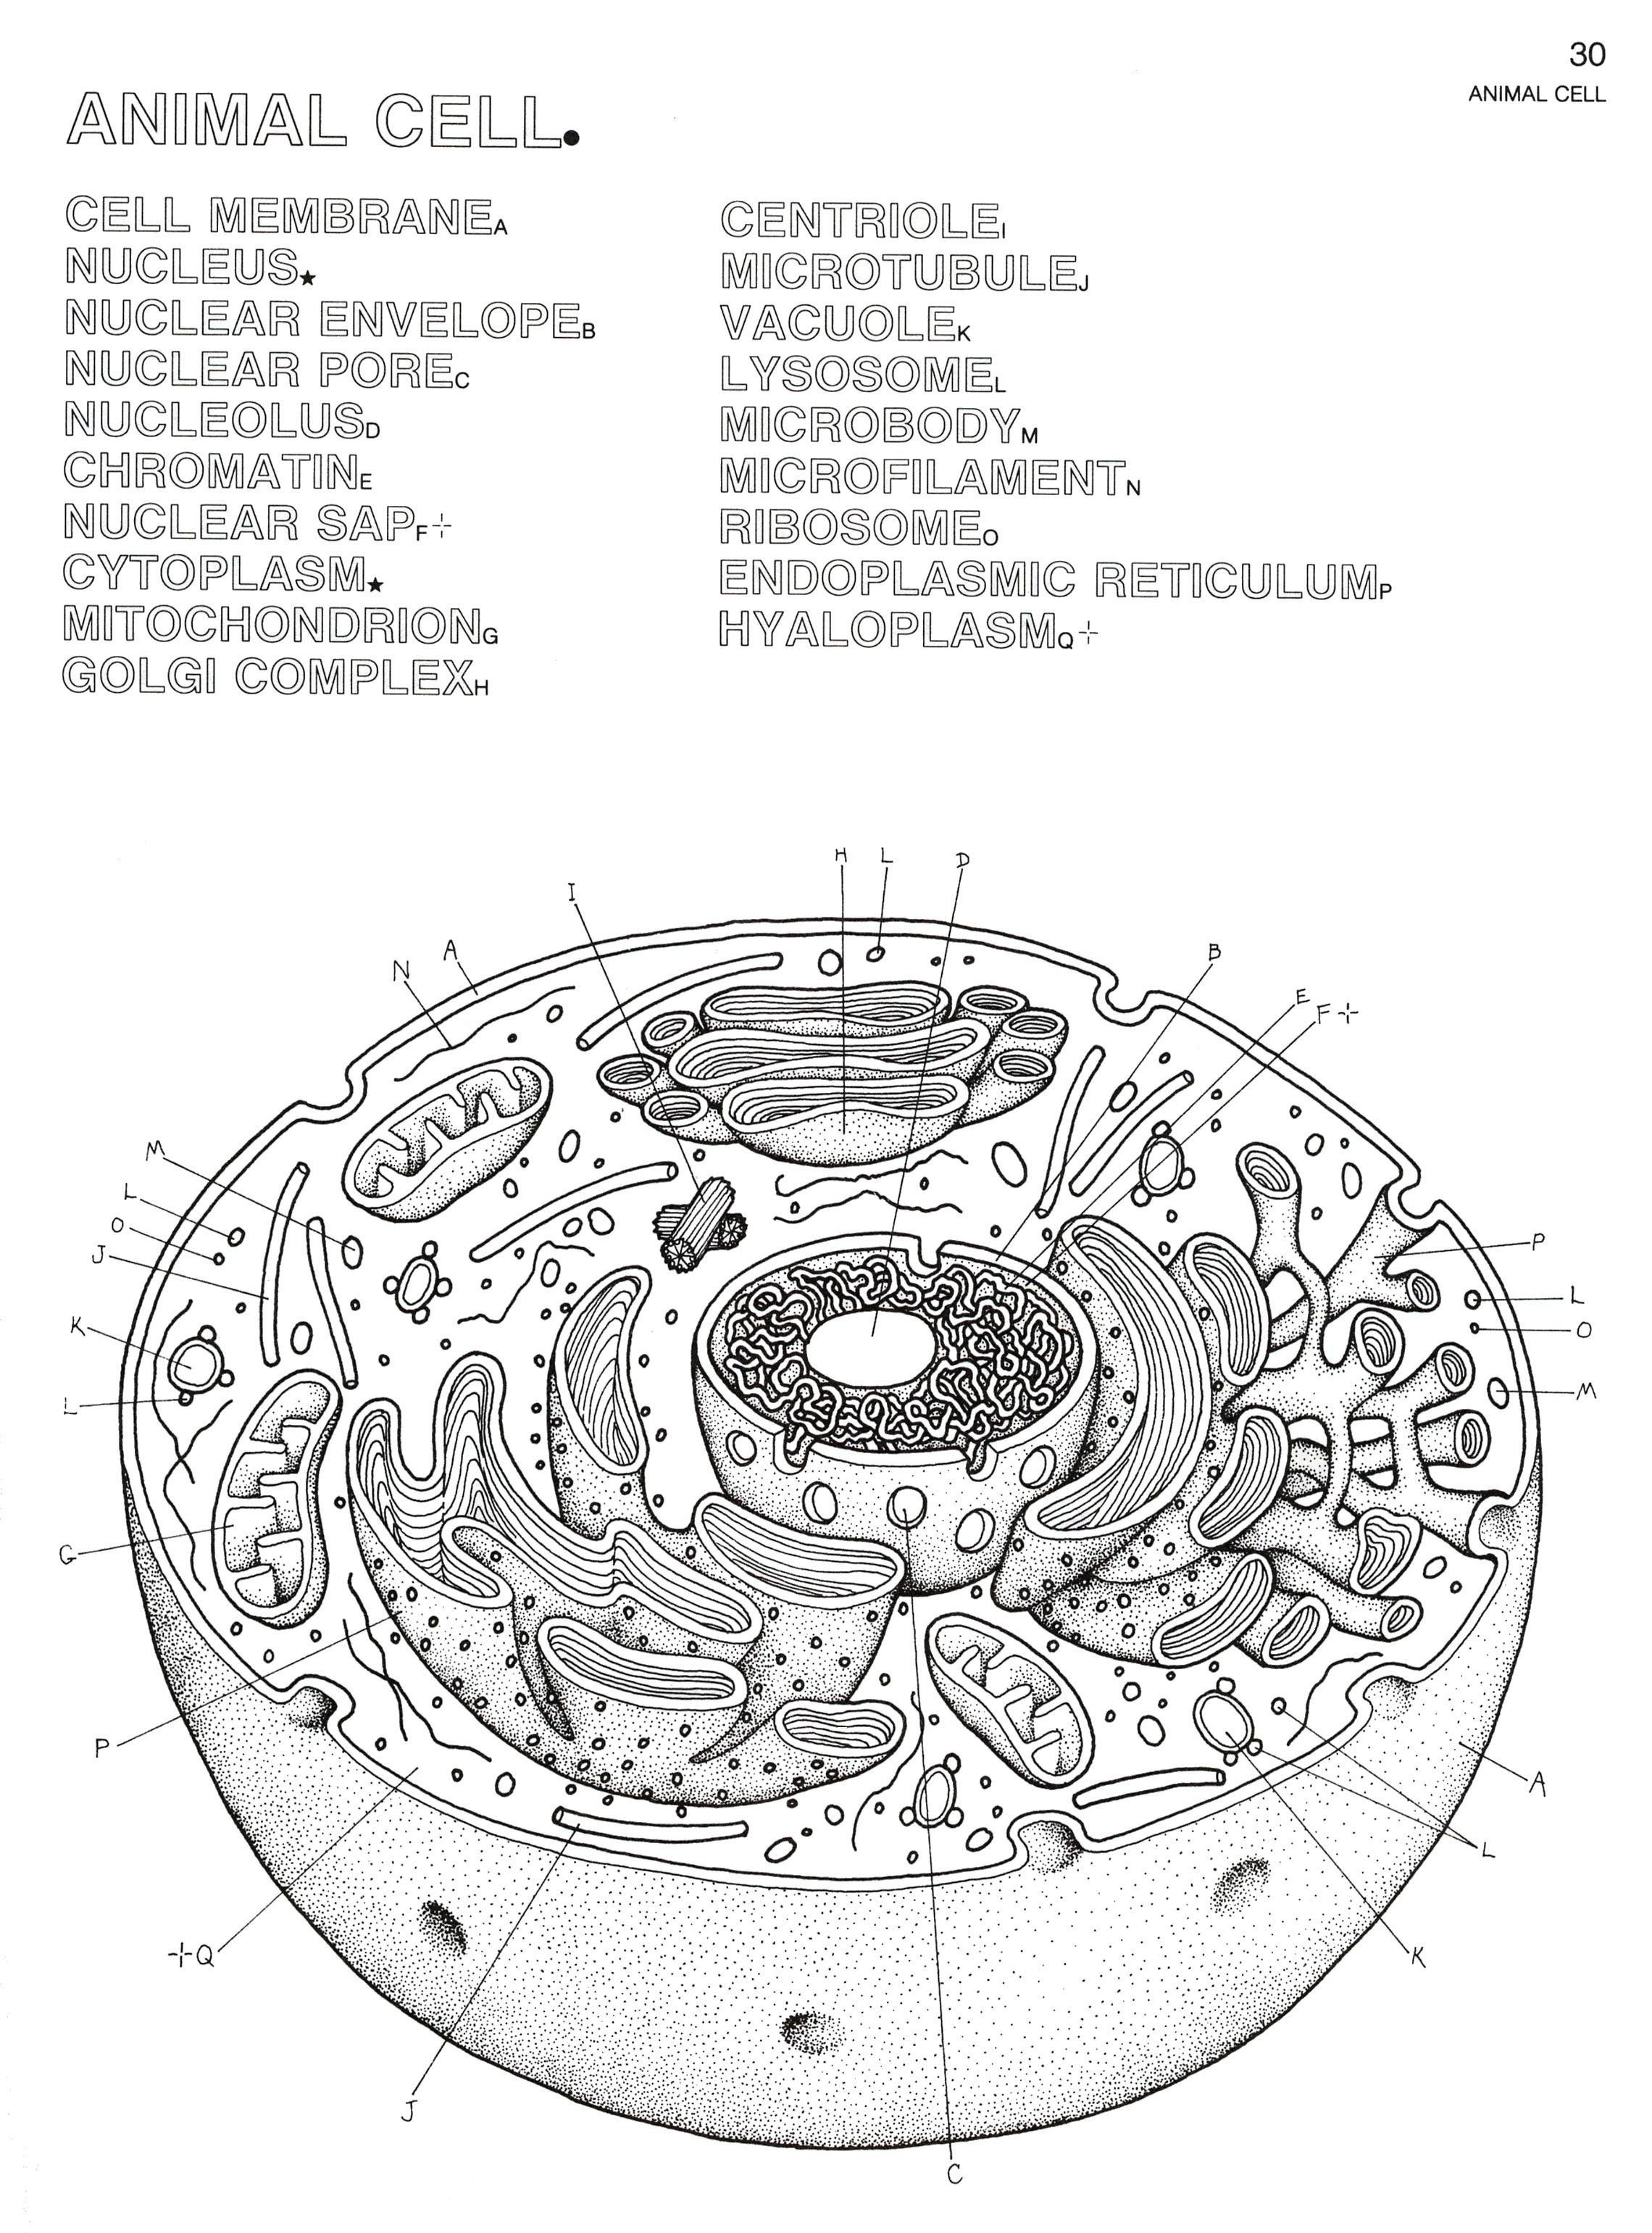 Awesome Cell Organelle Coloring Sheets Plant And Animal Cells Cells Worksheet Animal Cell Drawing [ 3081 x 2280 Pixel ]